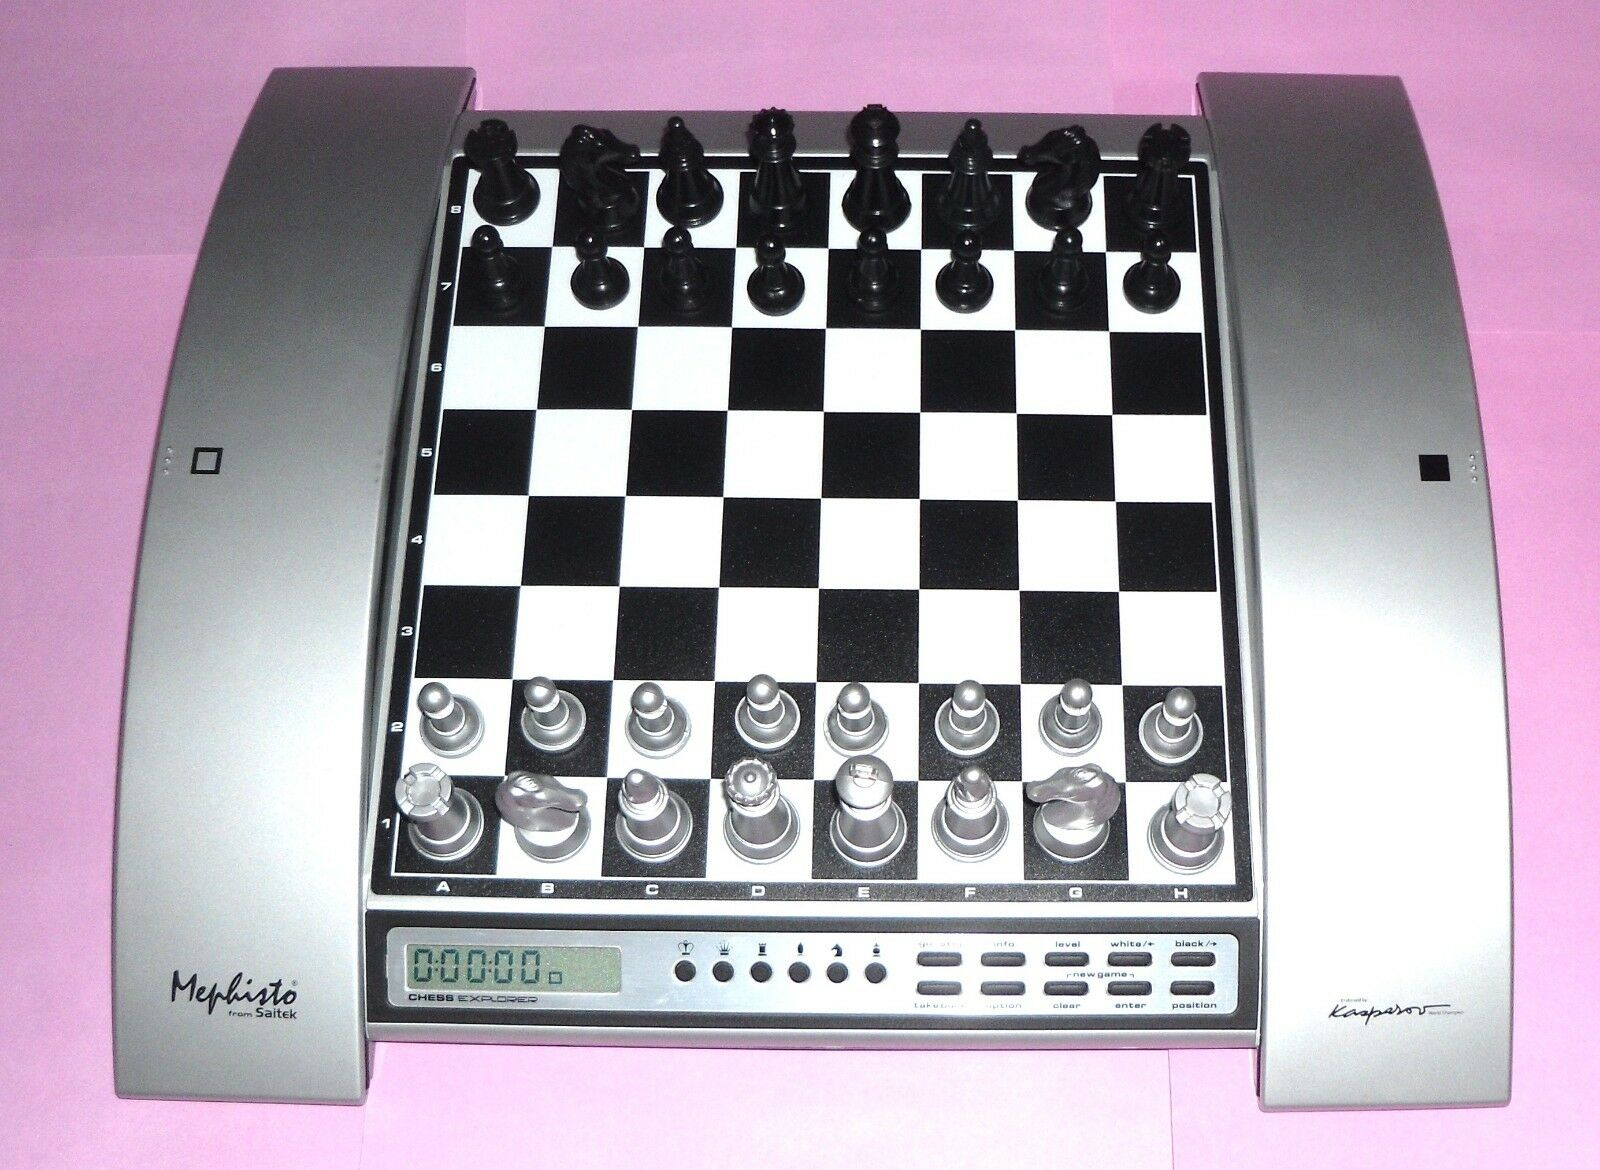 Ideal gift kasparov electronic chess computer by saitek